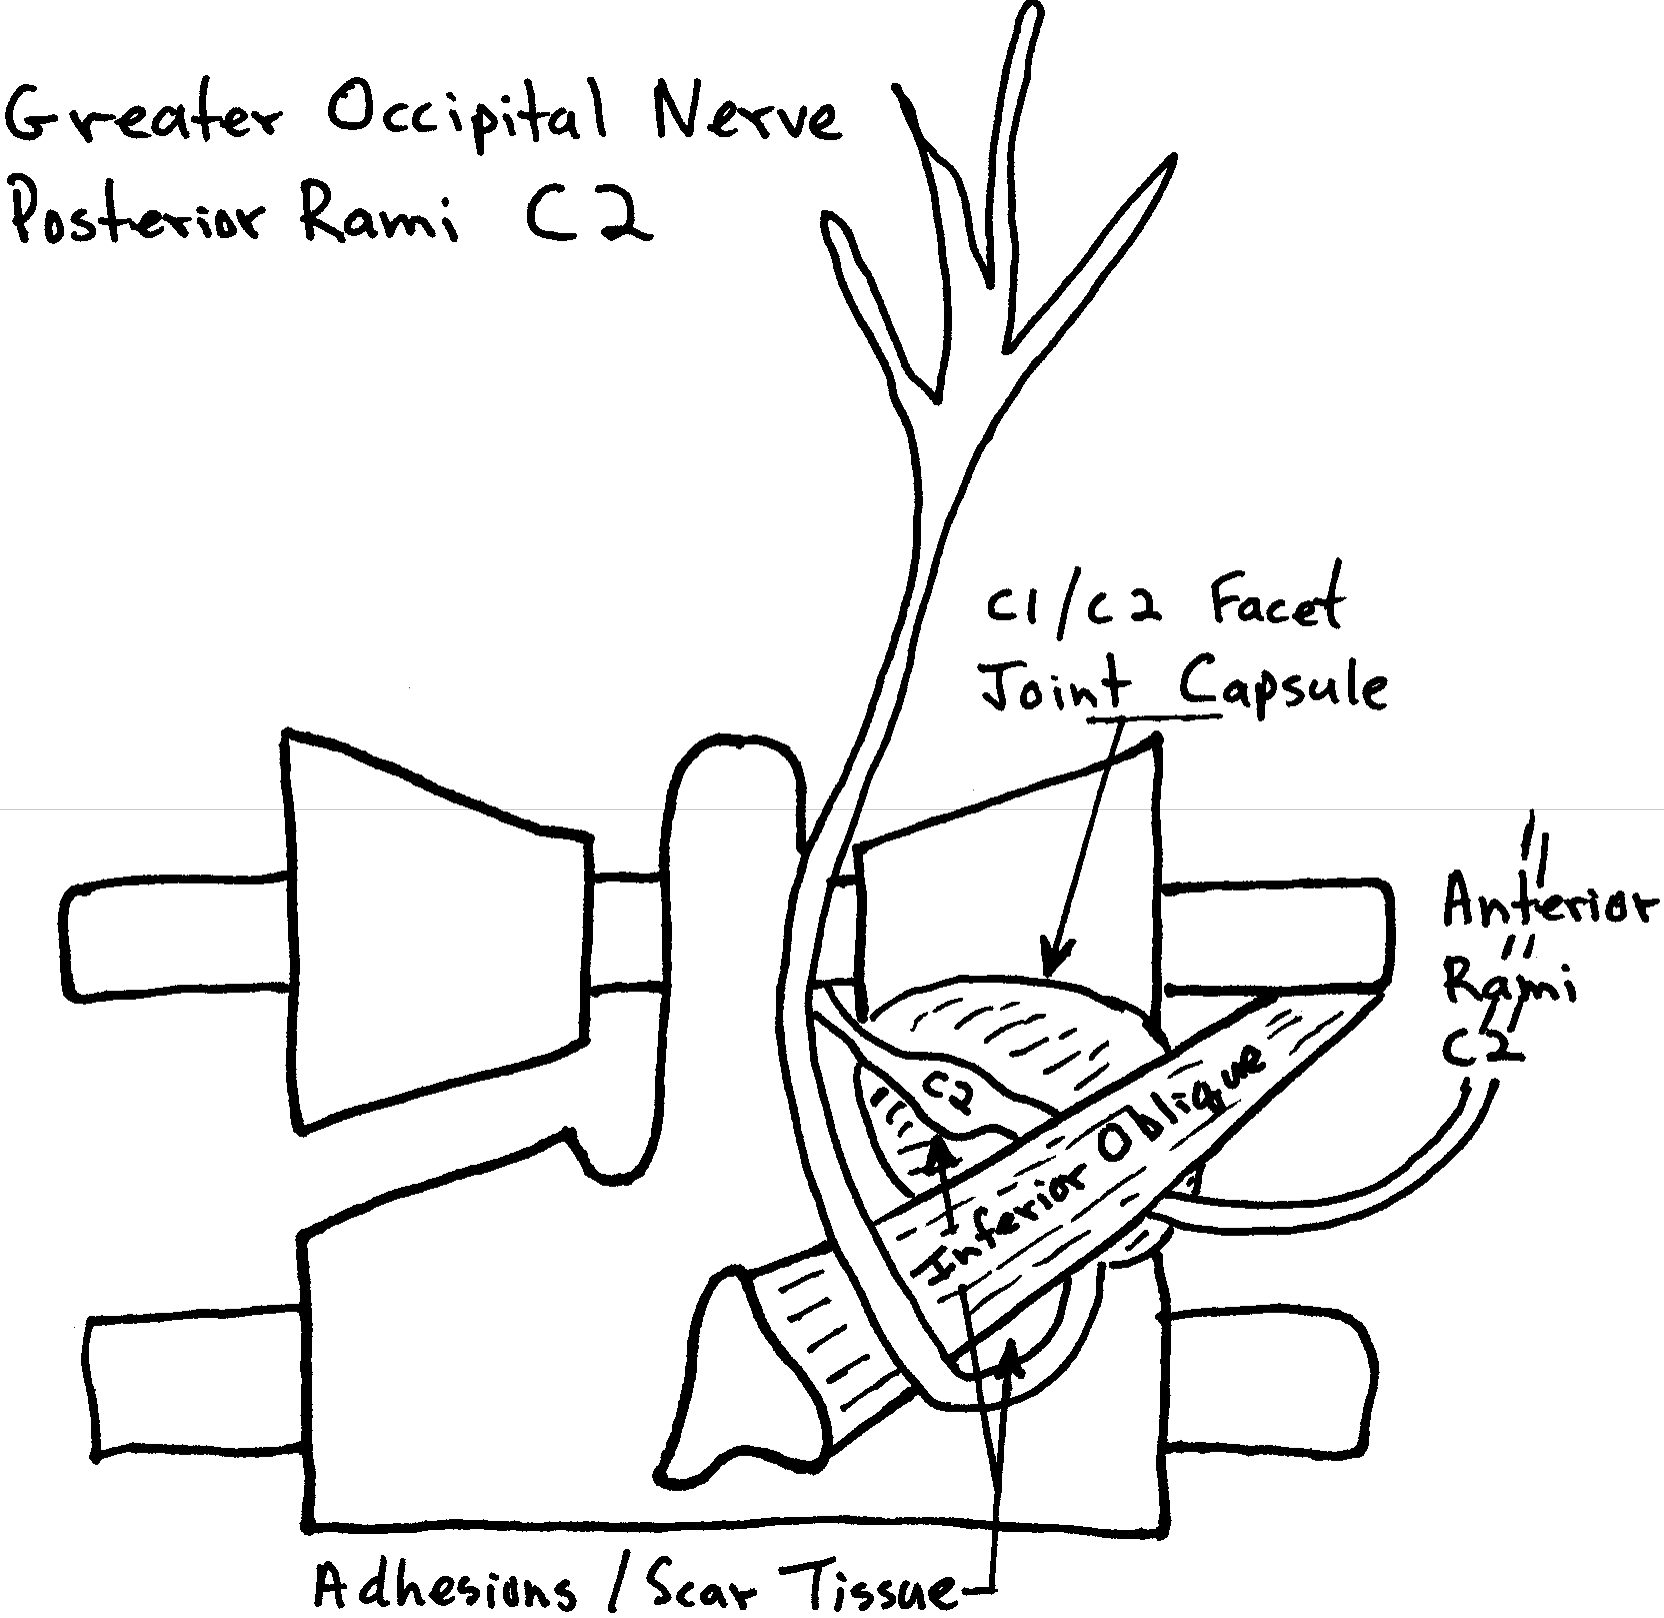 The take-home clinical message from all of this is that problems (irritations, inflammations, compressions) of nerve roots C1, C2, and/or C3 can result in tongue symptoms. These irritations, inflammations, compressions can be foraminal (nerve root) or peripheral (facet, at the capsule, or at the inferior oblique muscle).